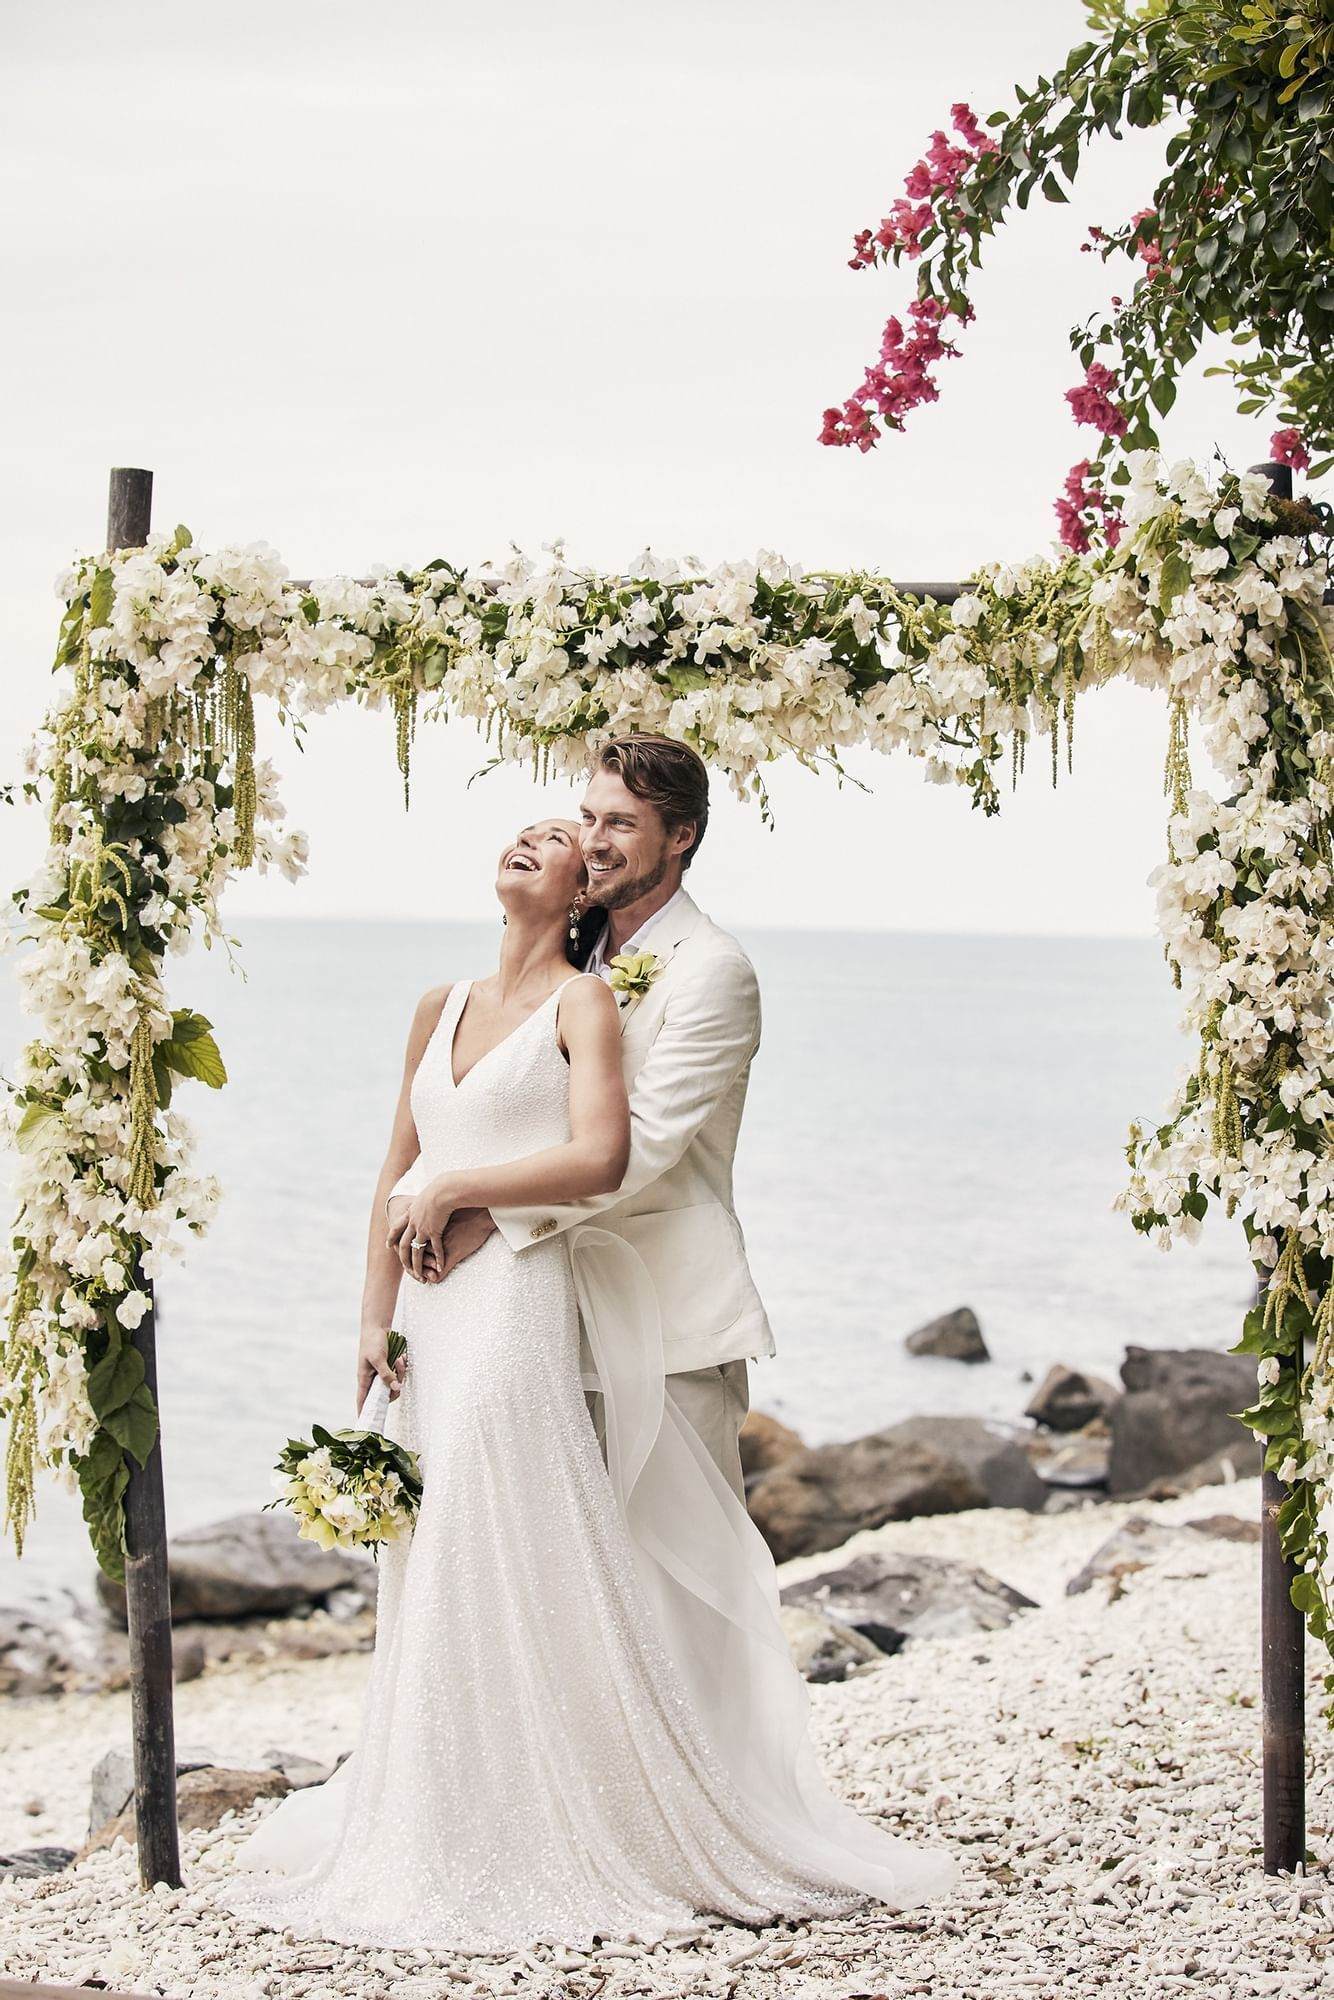 Wedded couple with flower decorations at Daydream Island Resort